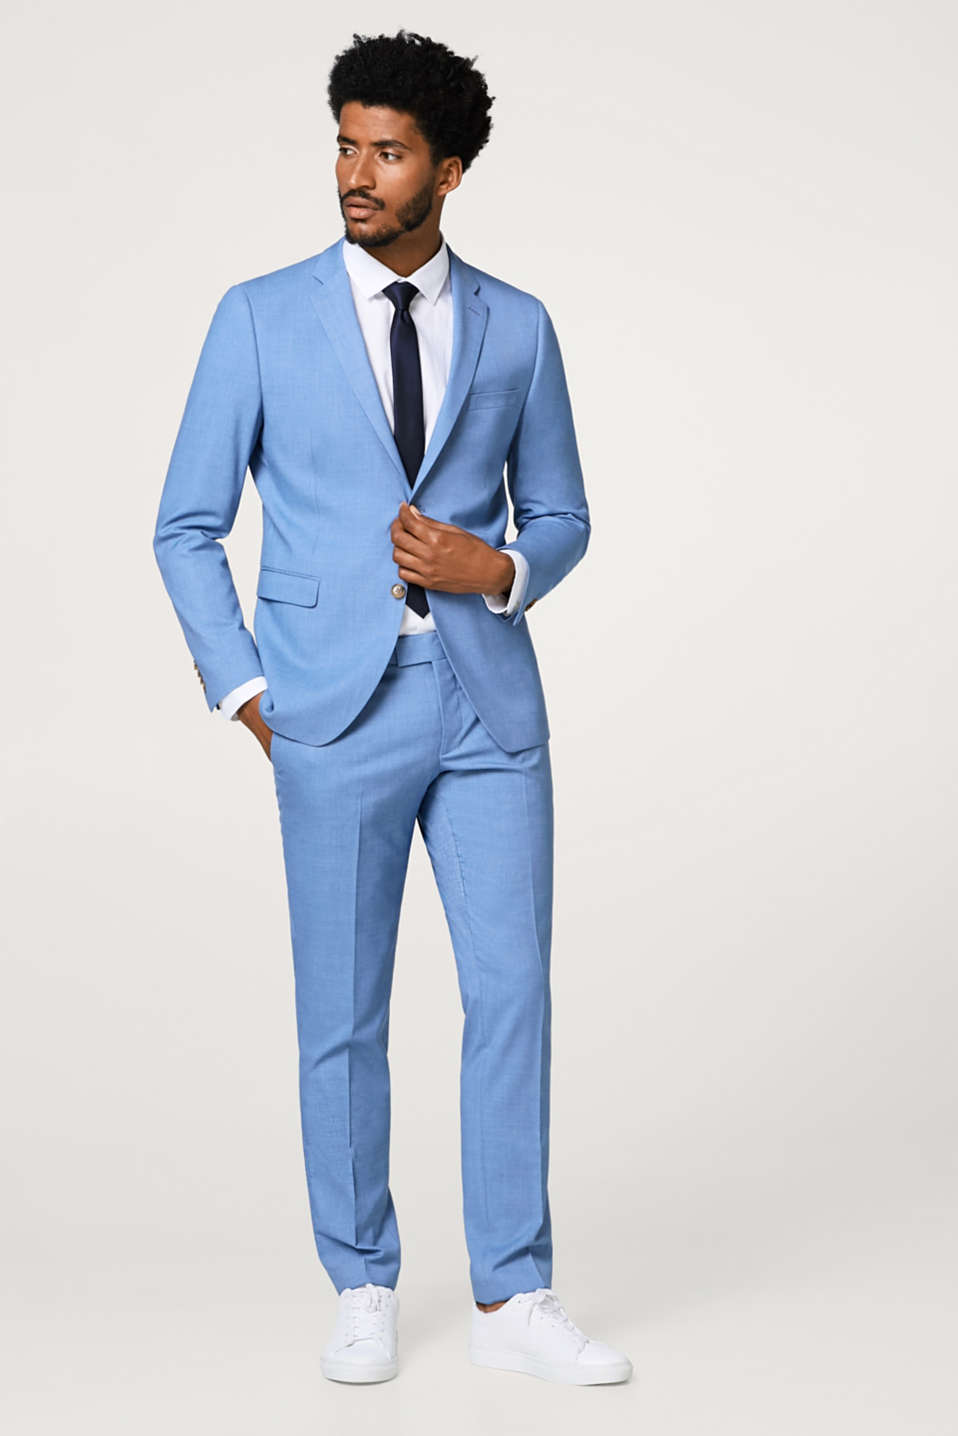 LIGHT COLORED SUIT mix + match: stretch sports jacket